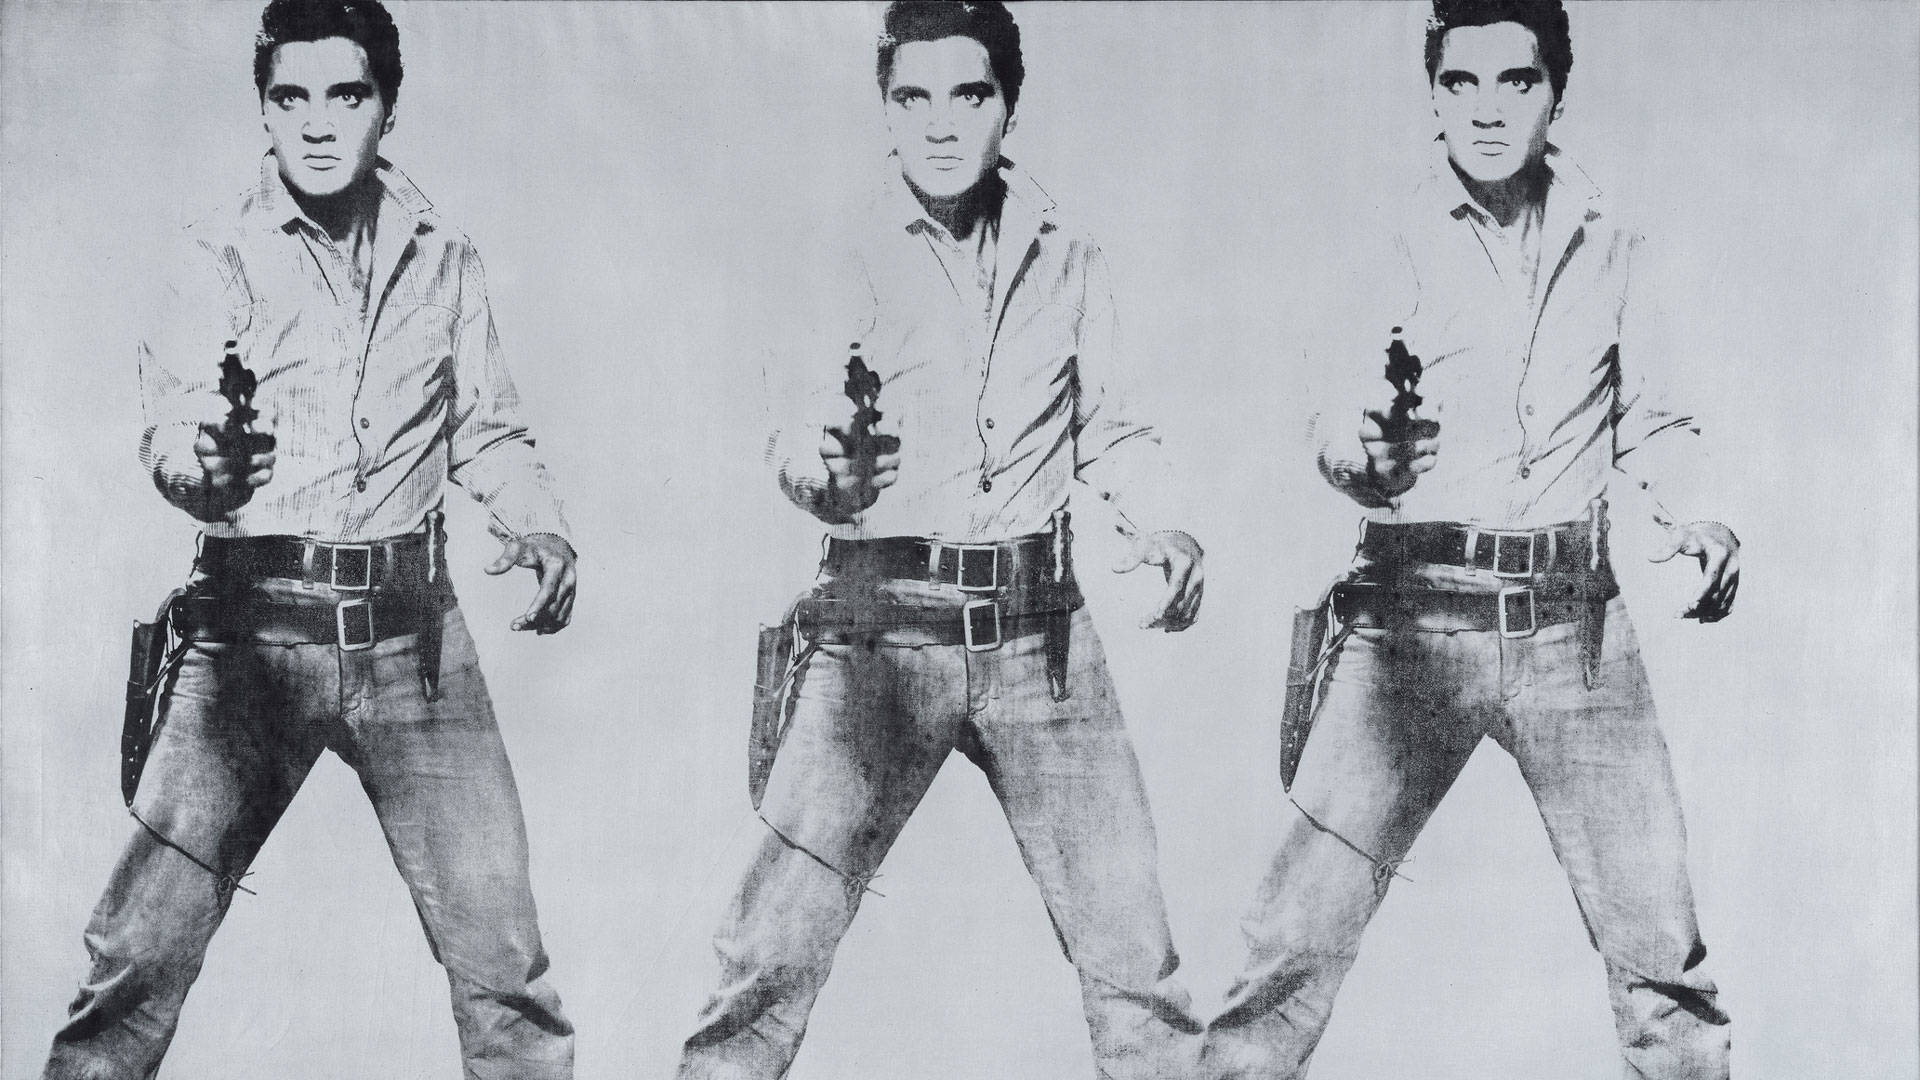 Andy Warhol, 'Triple Elvis [Ferus Type],' 1963. © The Andy Warhol Foundation for the Visual Arts, Inc. / Artists Rights Society (ARS) New York.